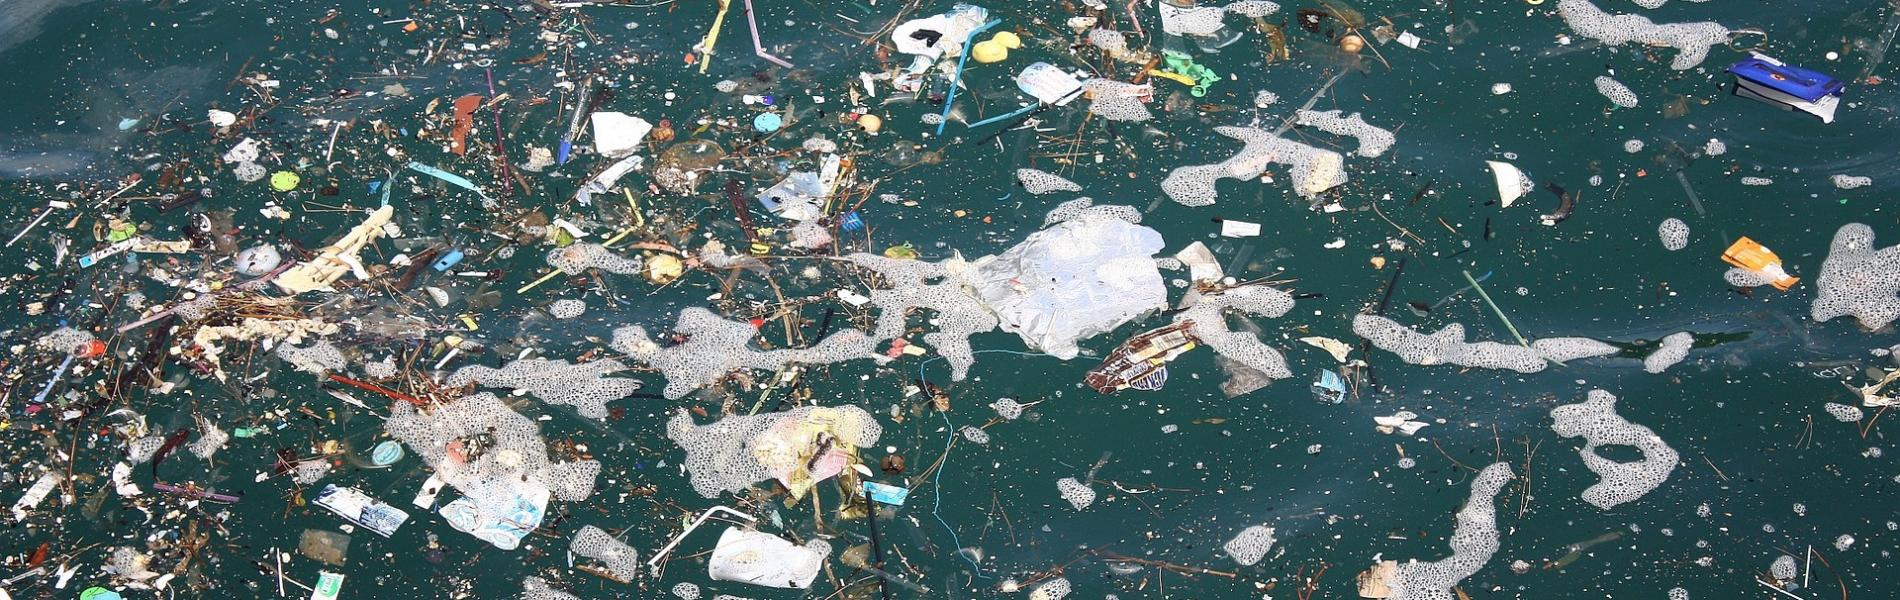 garbage in the water